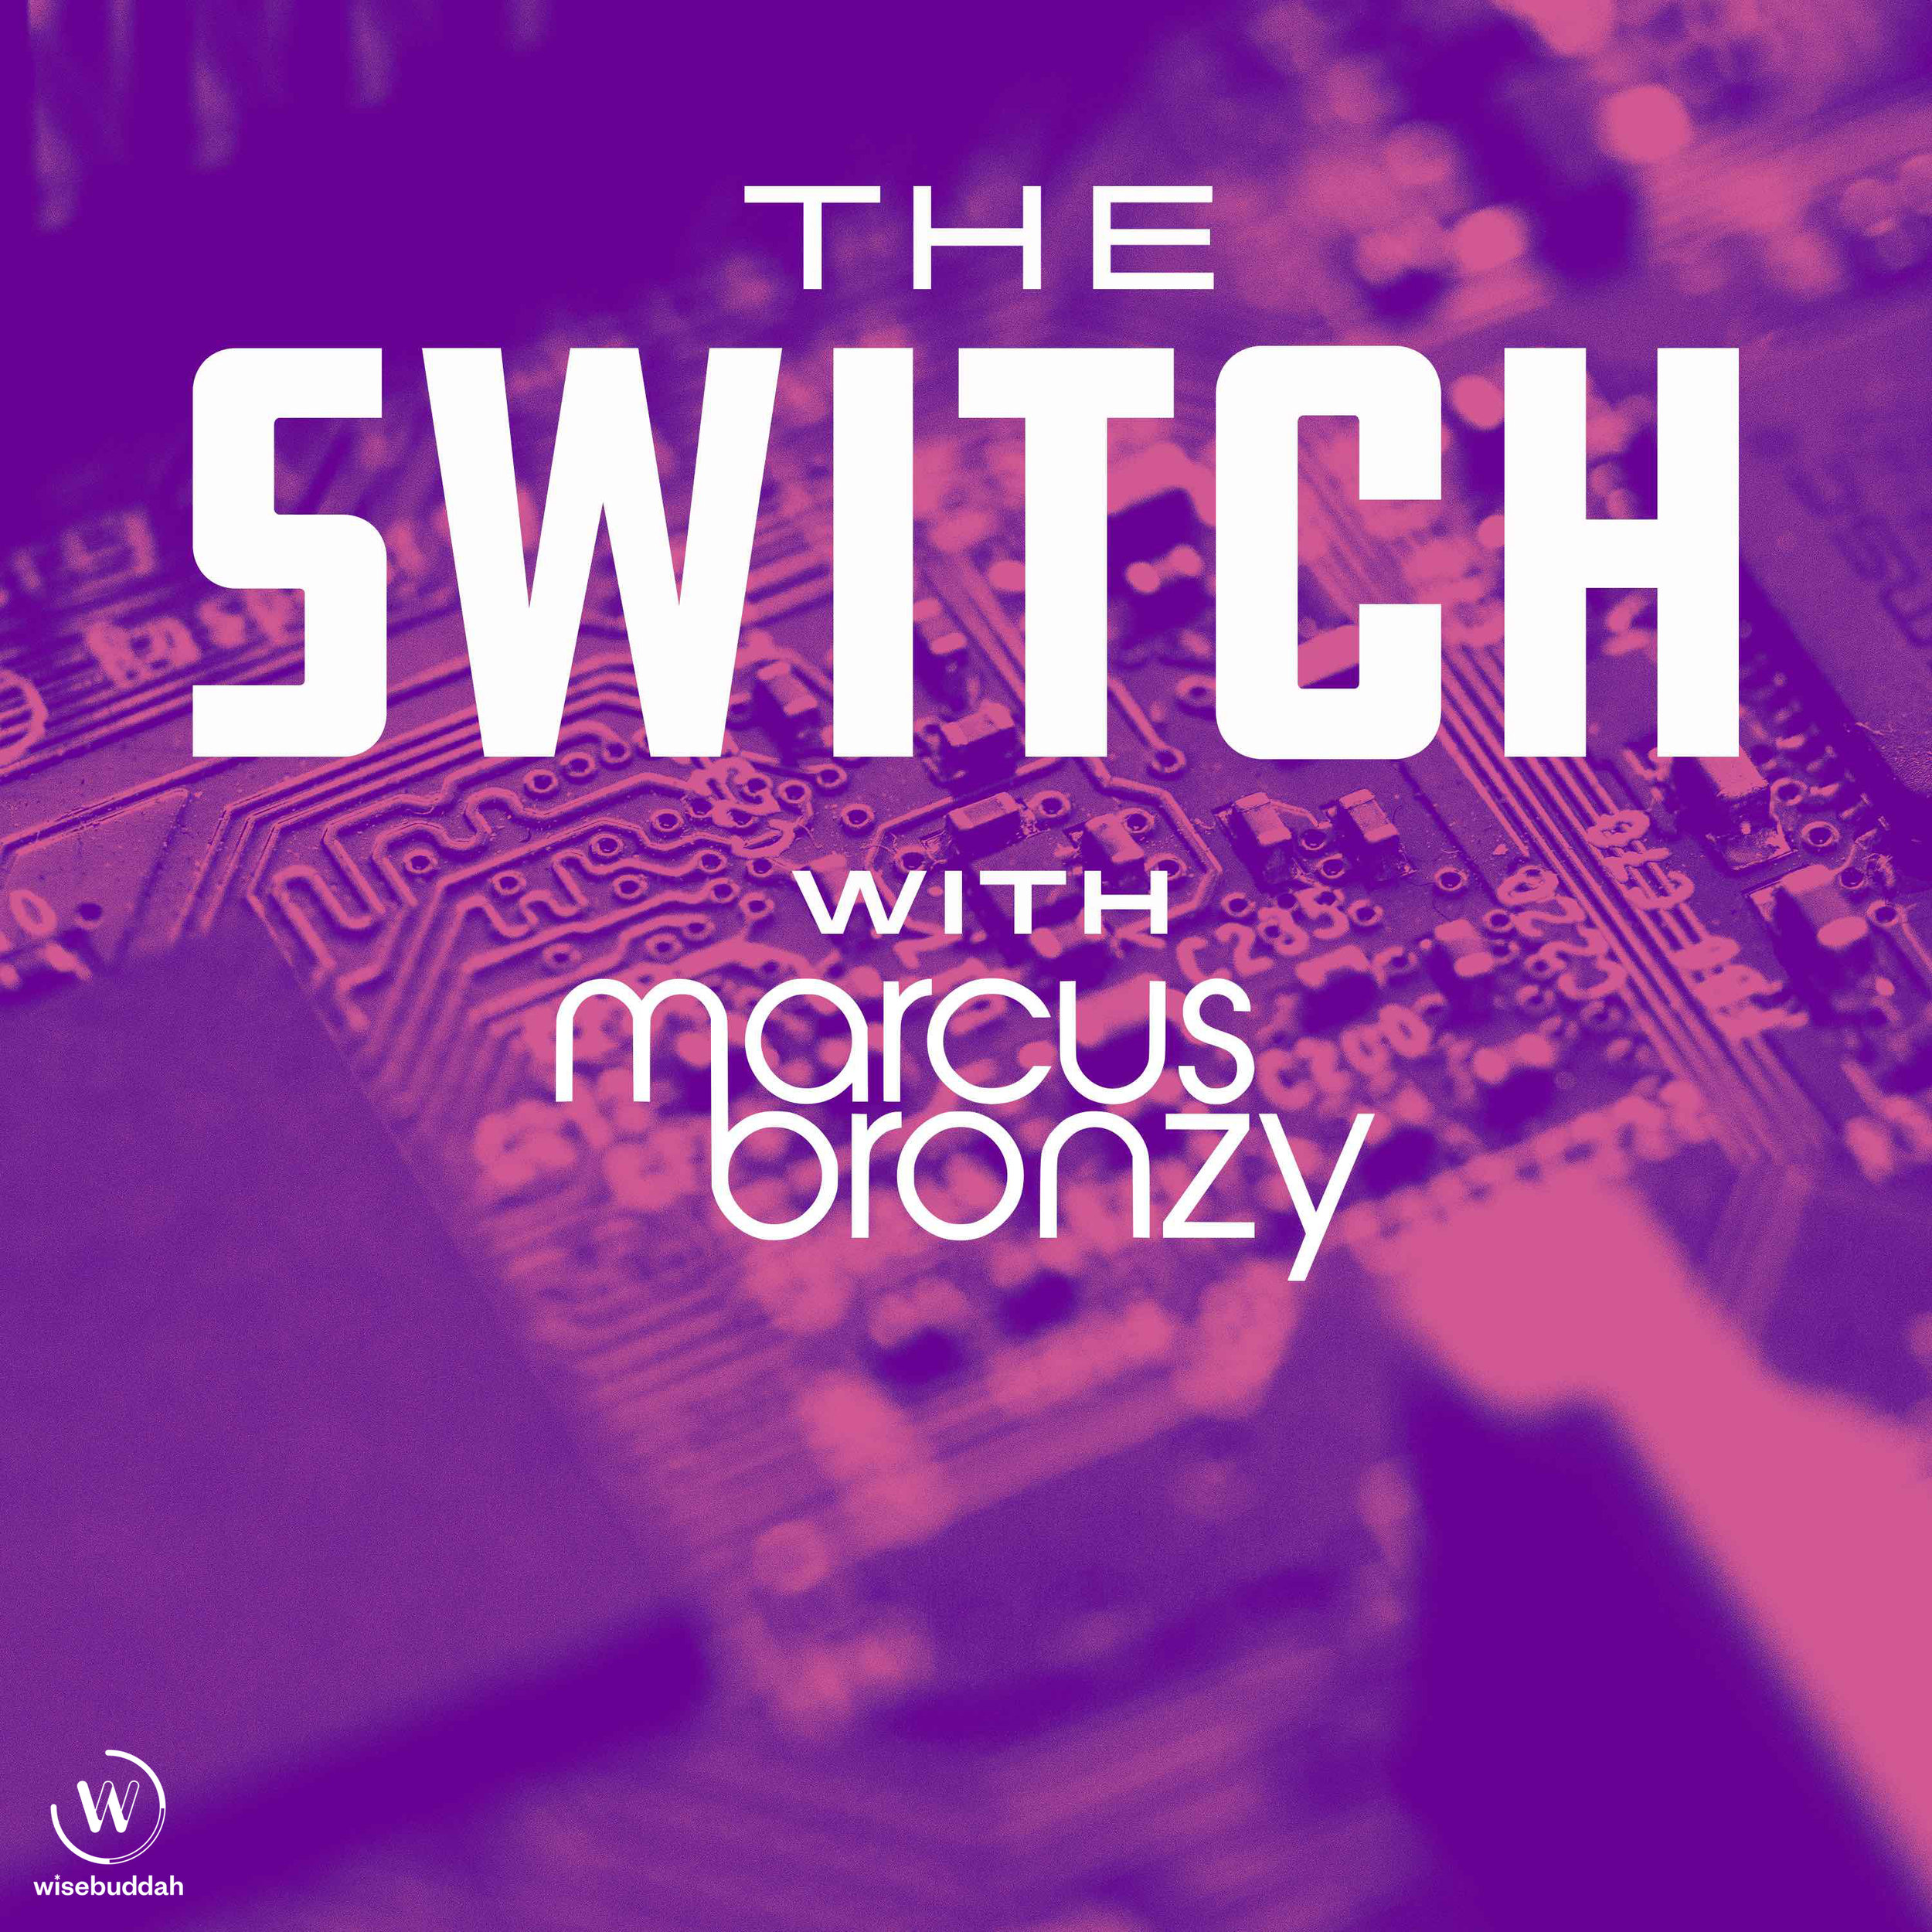 Marcus Bronzy - Host Marcus Bronzy takes you on a journey into the very human stories behind the technology that is switching up the world as we know it.